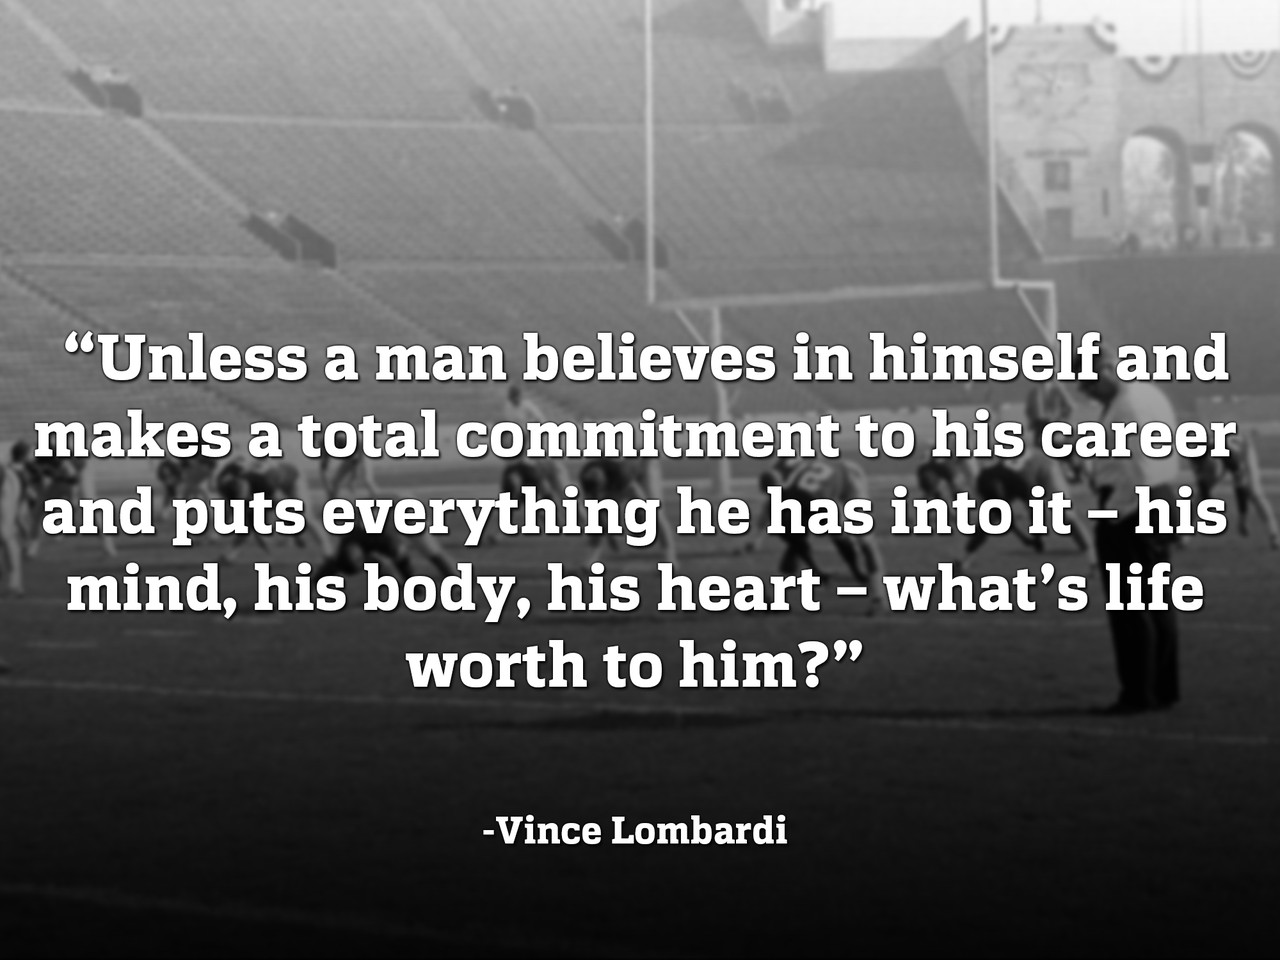 vince-lombardi-quotes-13